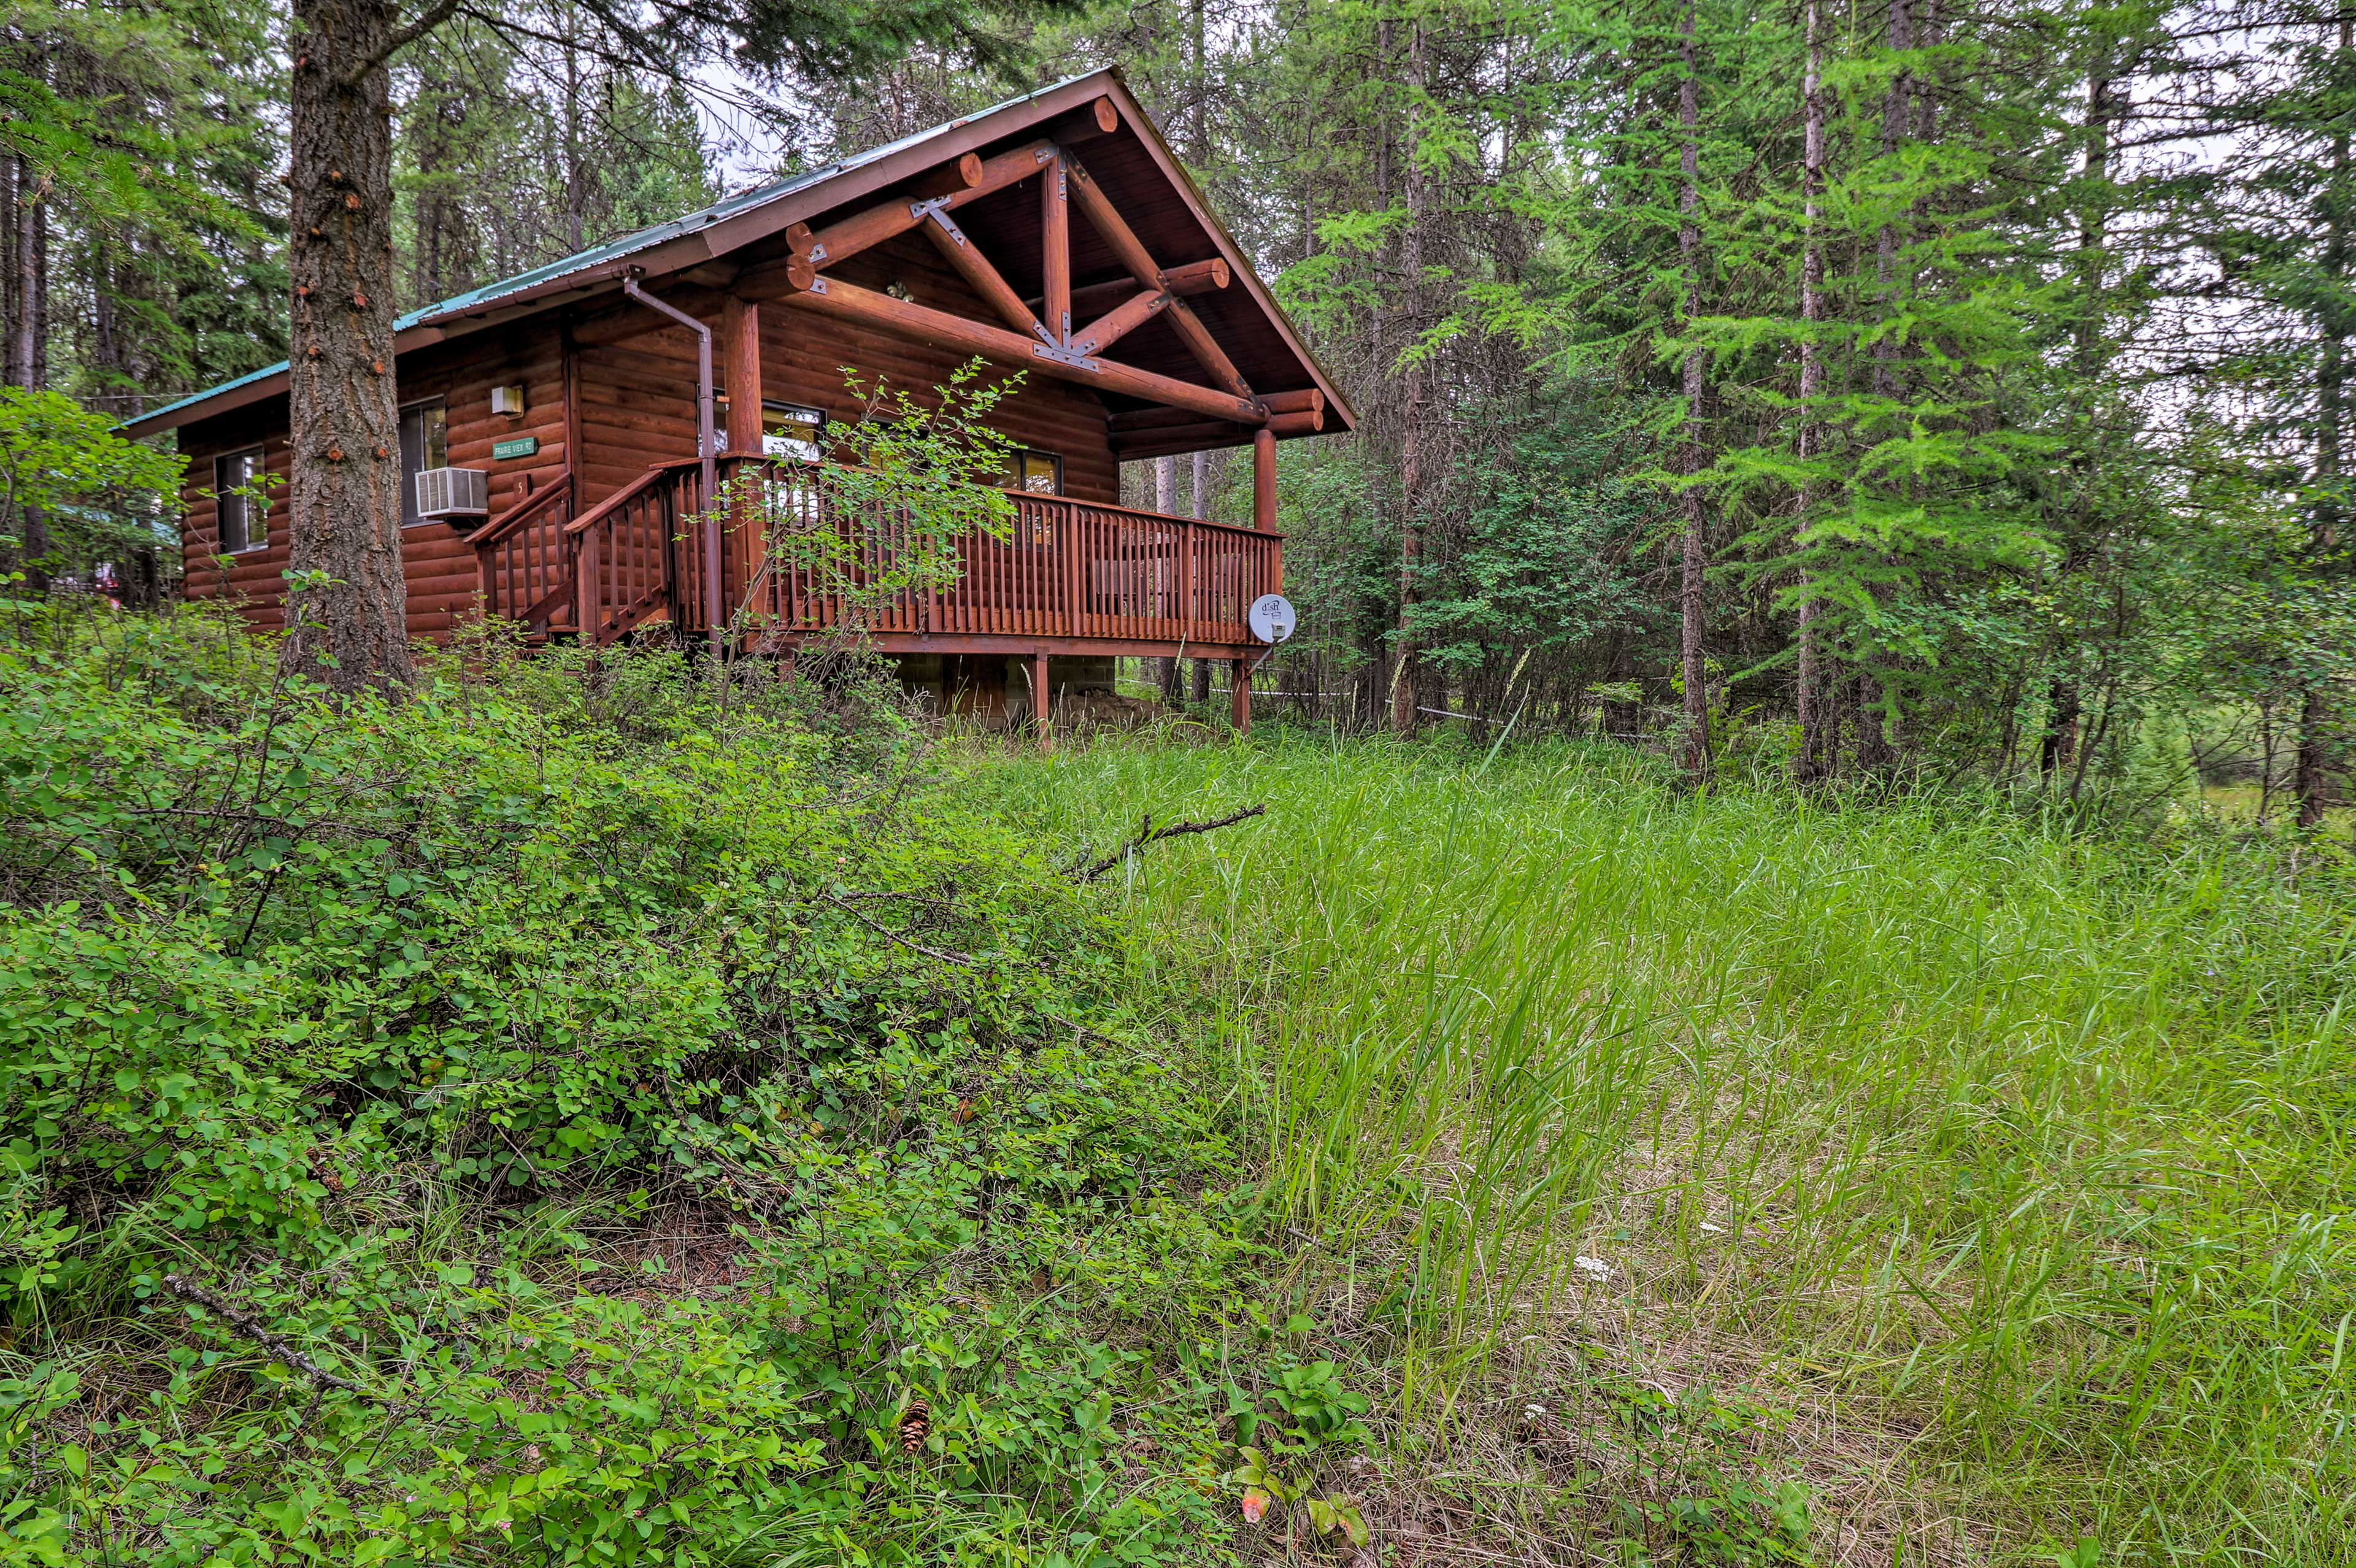 This secluded home-away-from-home is calling your name!